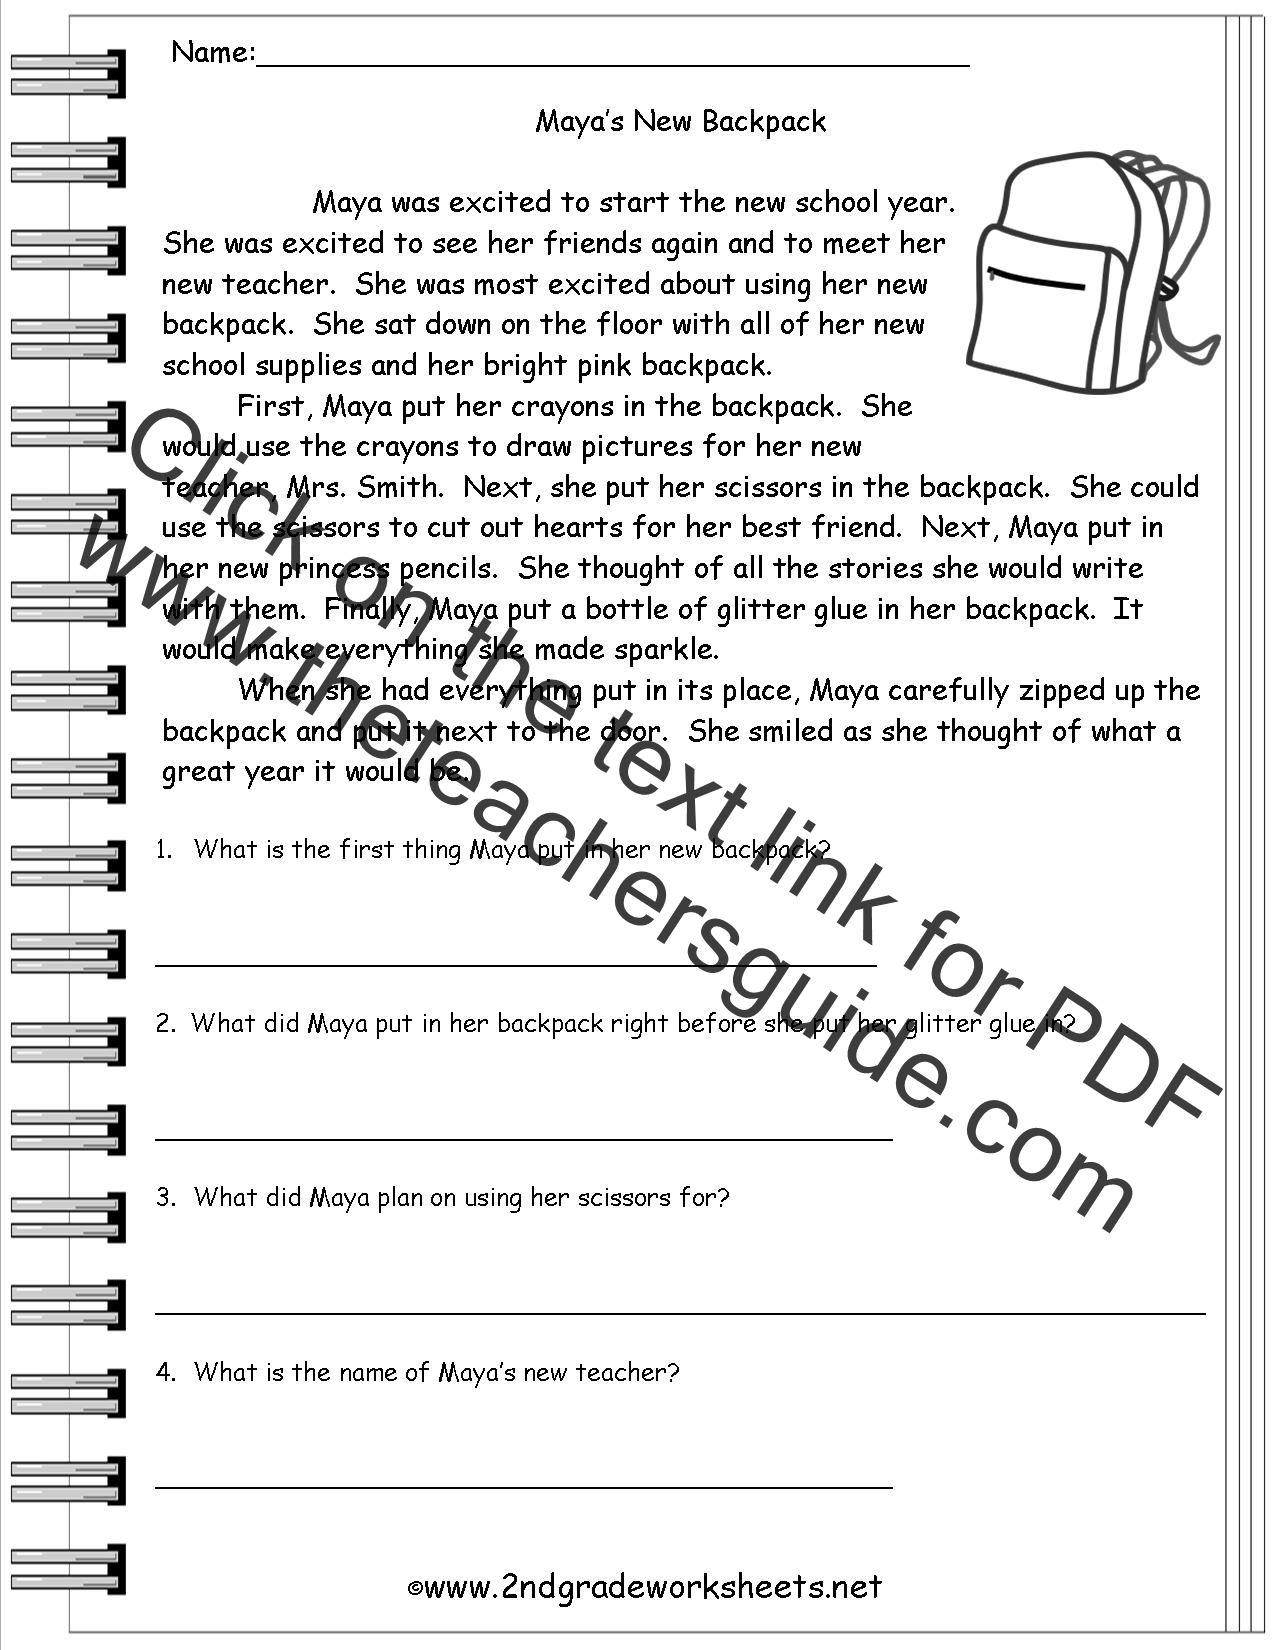 Worksheet Reading Comprehension Sheets reading worksheeets literature worksheets